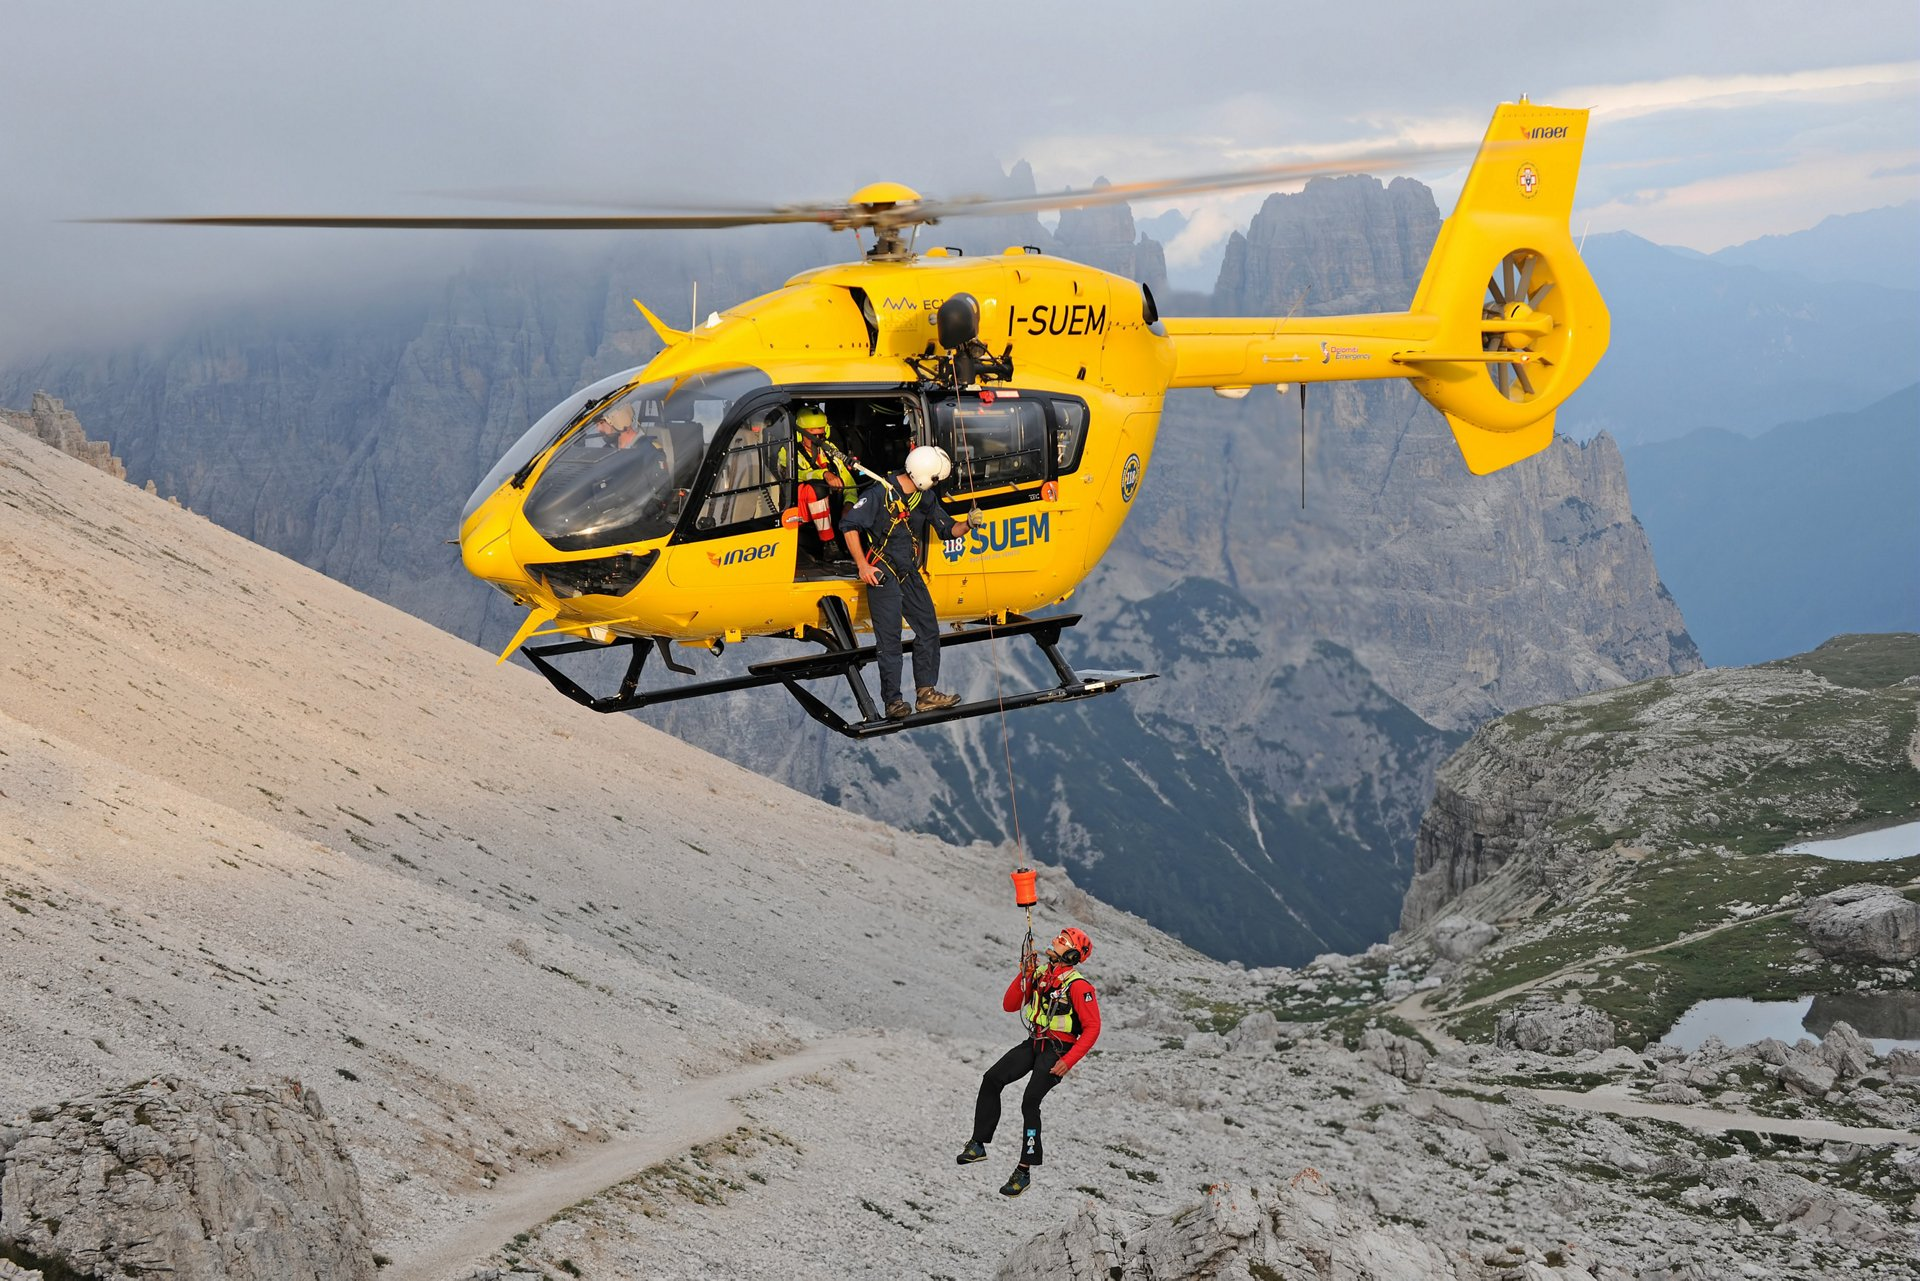 Airbus Helicopters raises the maximum take-off weight of the H145 to 3,700kg